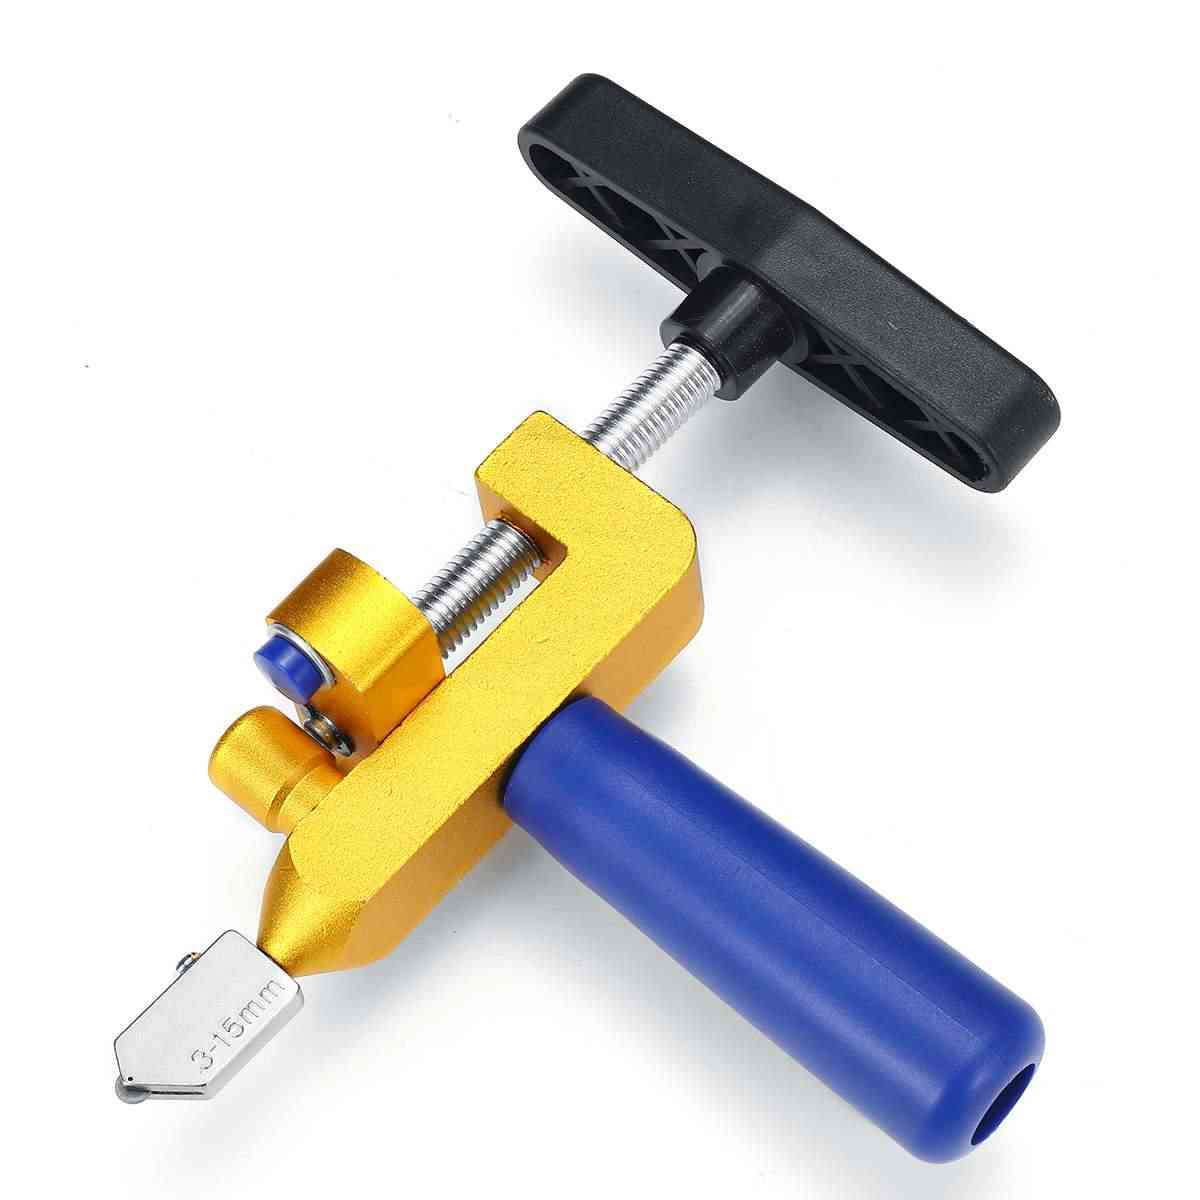 Glass Tile Cutter, 2 In 1 Ceramic Cutting, One-piece Portable Tool